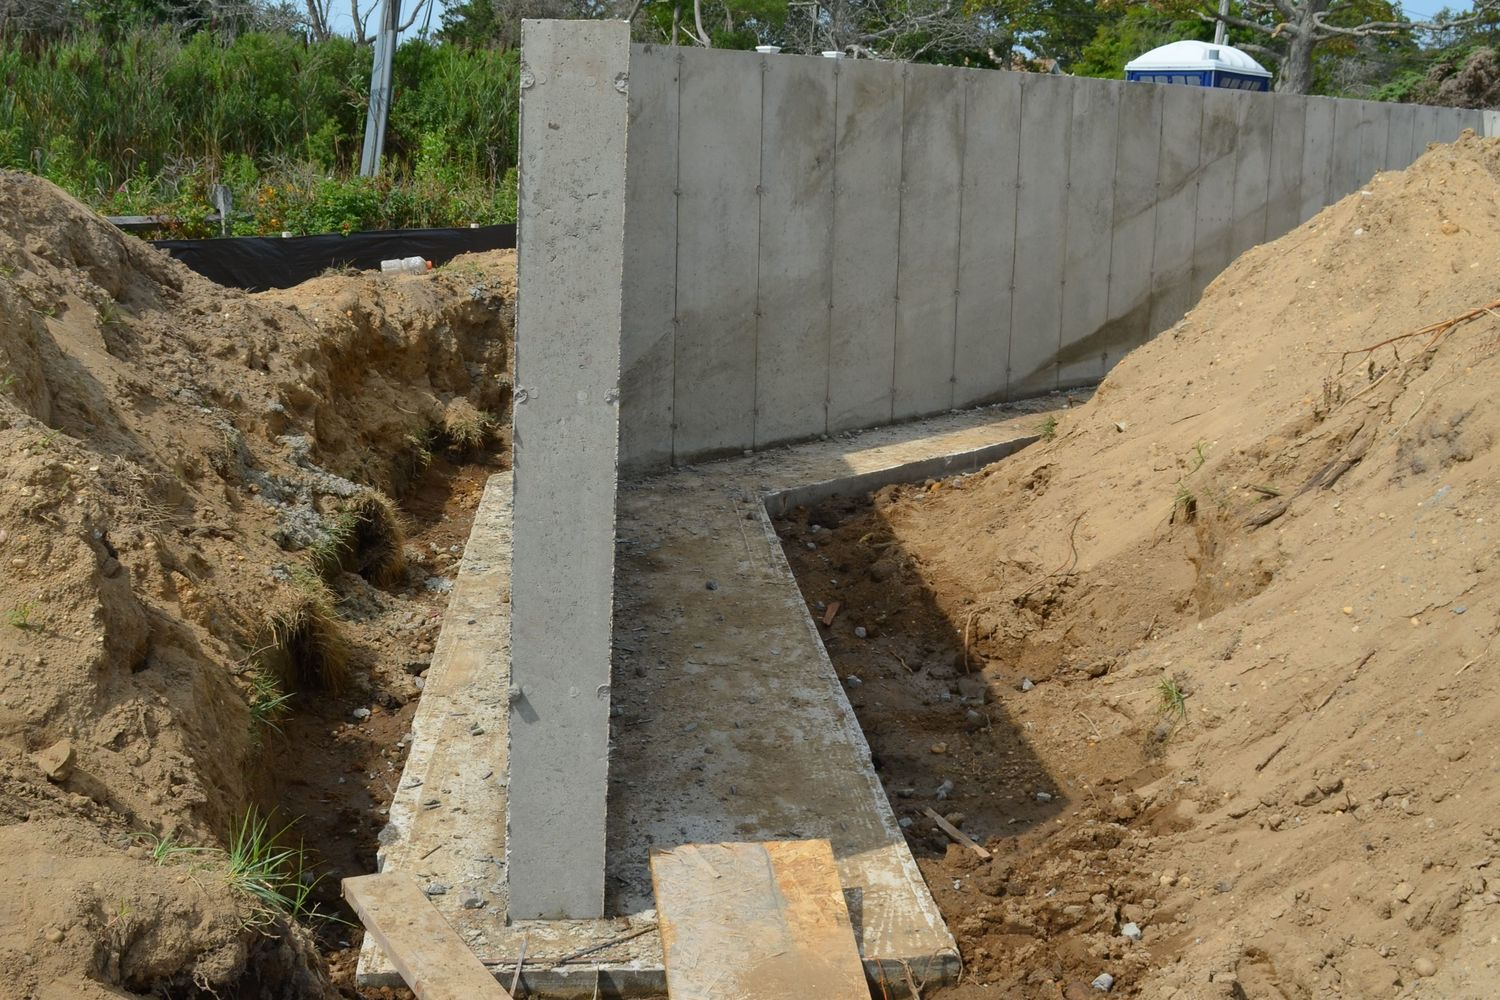 Concrete retaining walls-Broward Custom Concrete Solutions-We offer custom concrete solutions including Polished concrete, Stained concrete, Epoxy Floor, Sealed concrete, Stamped concrete, Concrete overlay, Concrete countertops, Concrete summer kitchens, Driveway repairs, Concrete pool water falls, and more